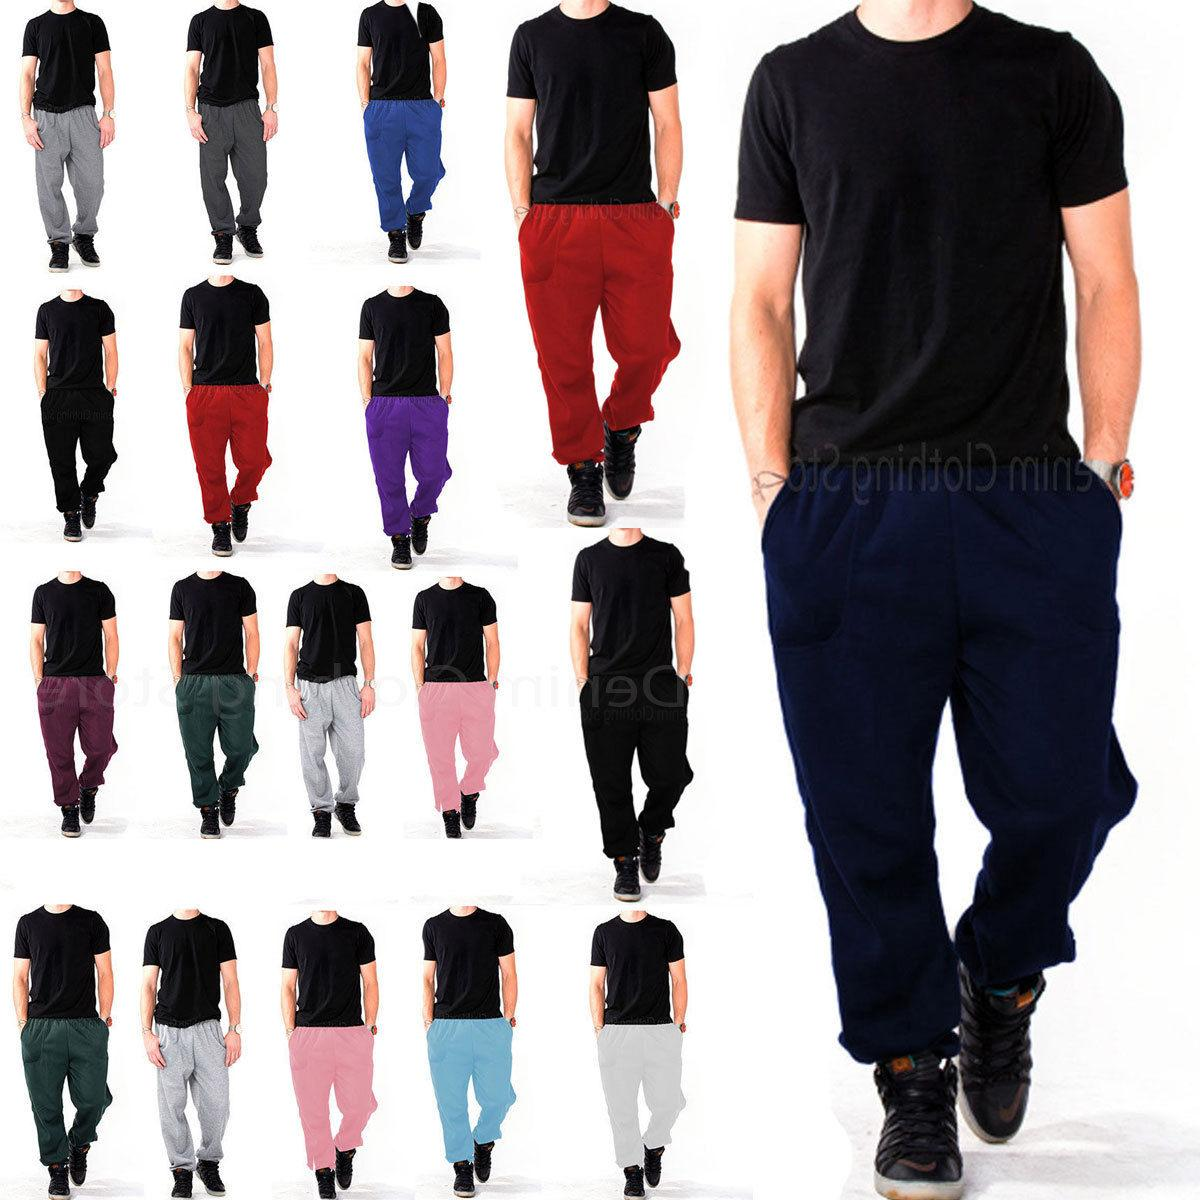 MEN WOMEN UNISEX SWEATPANTS FLEECE WORKOUT GYM PANTS S-5XL